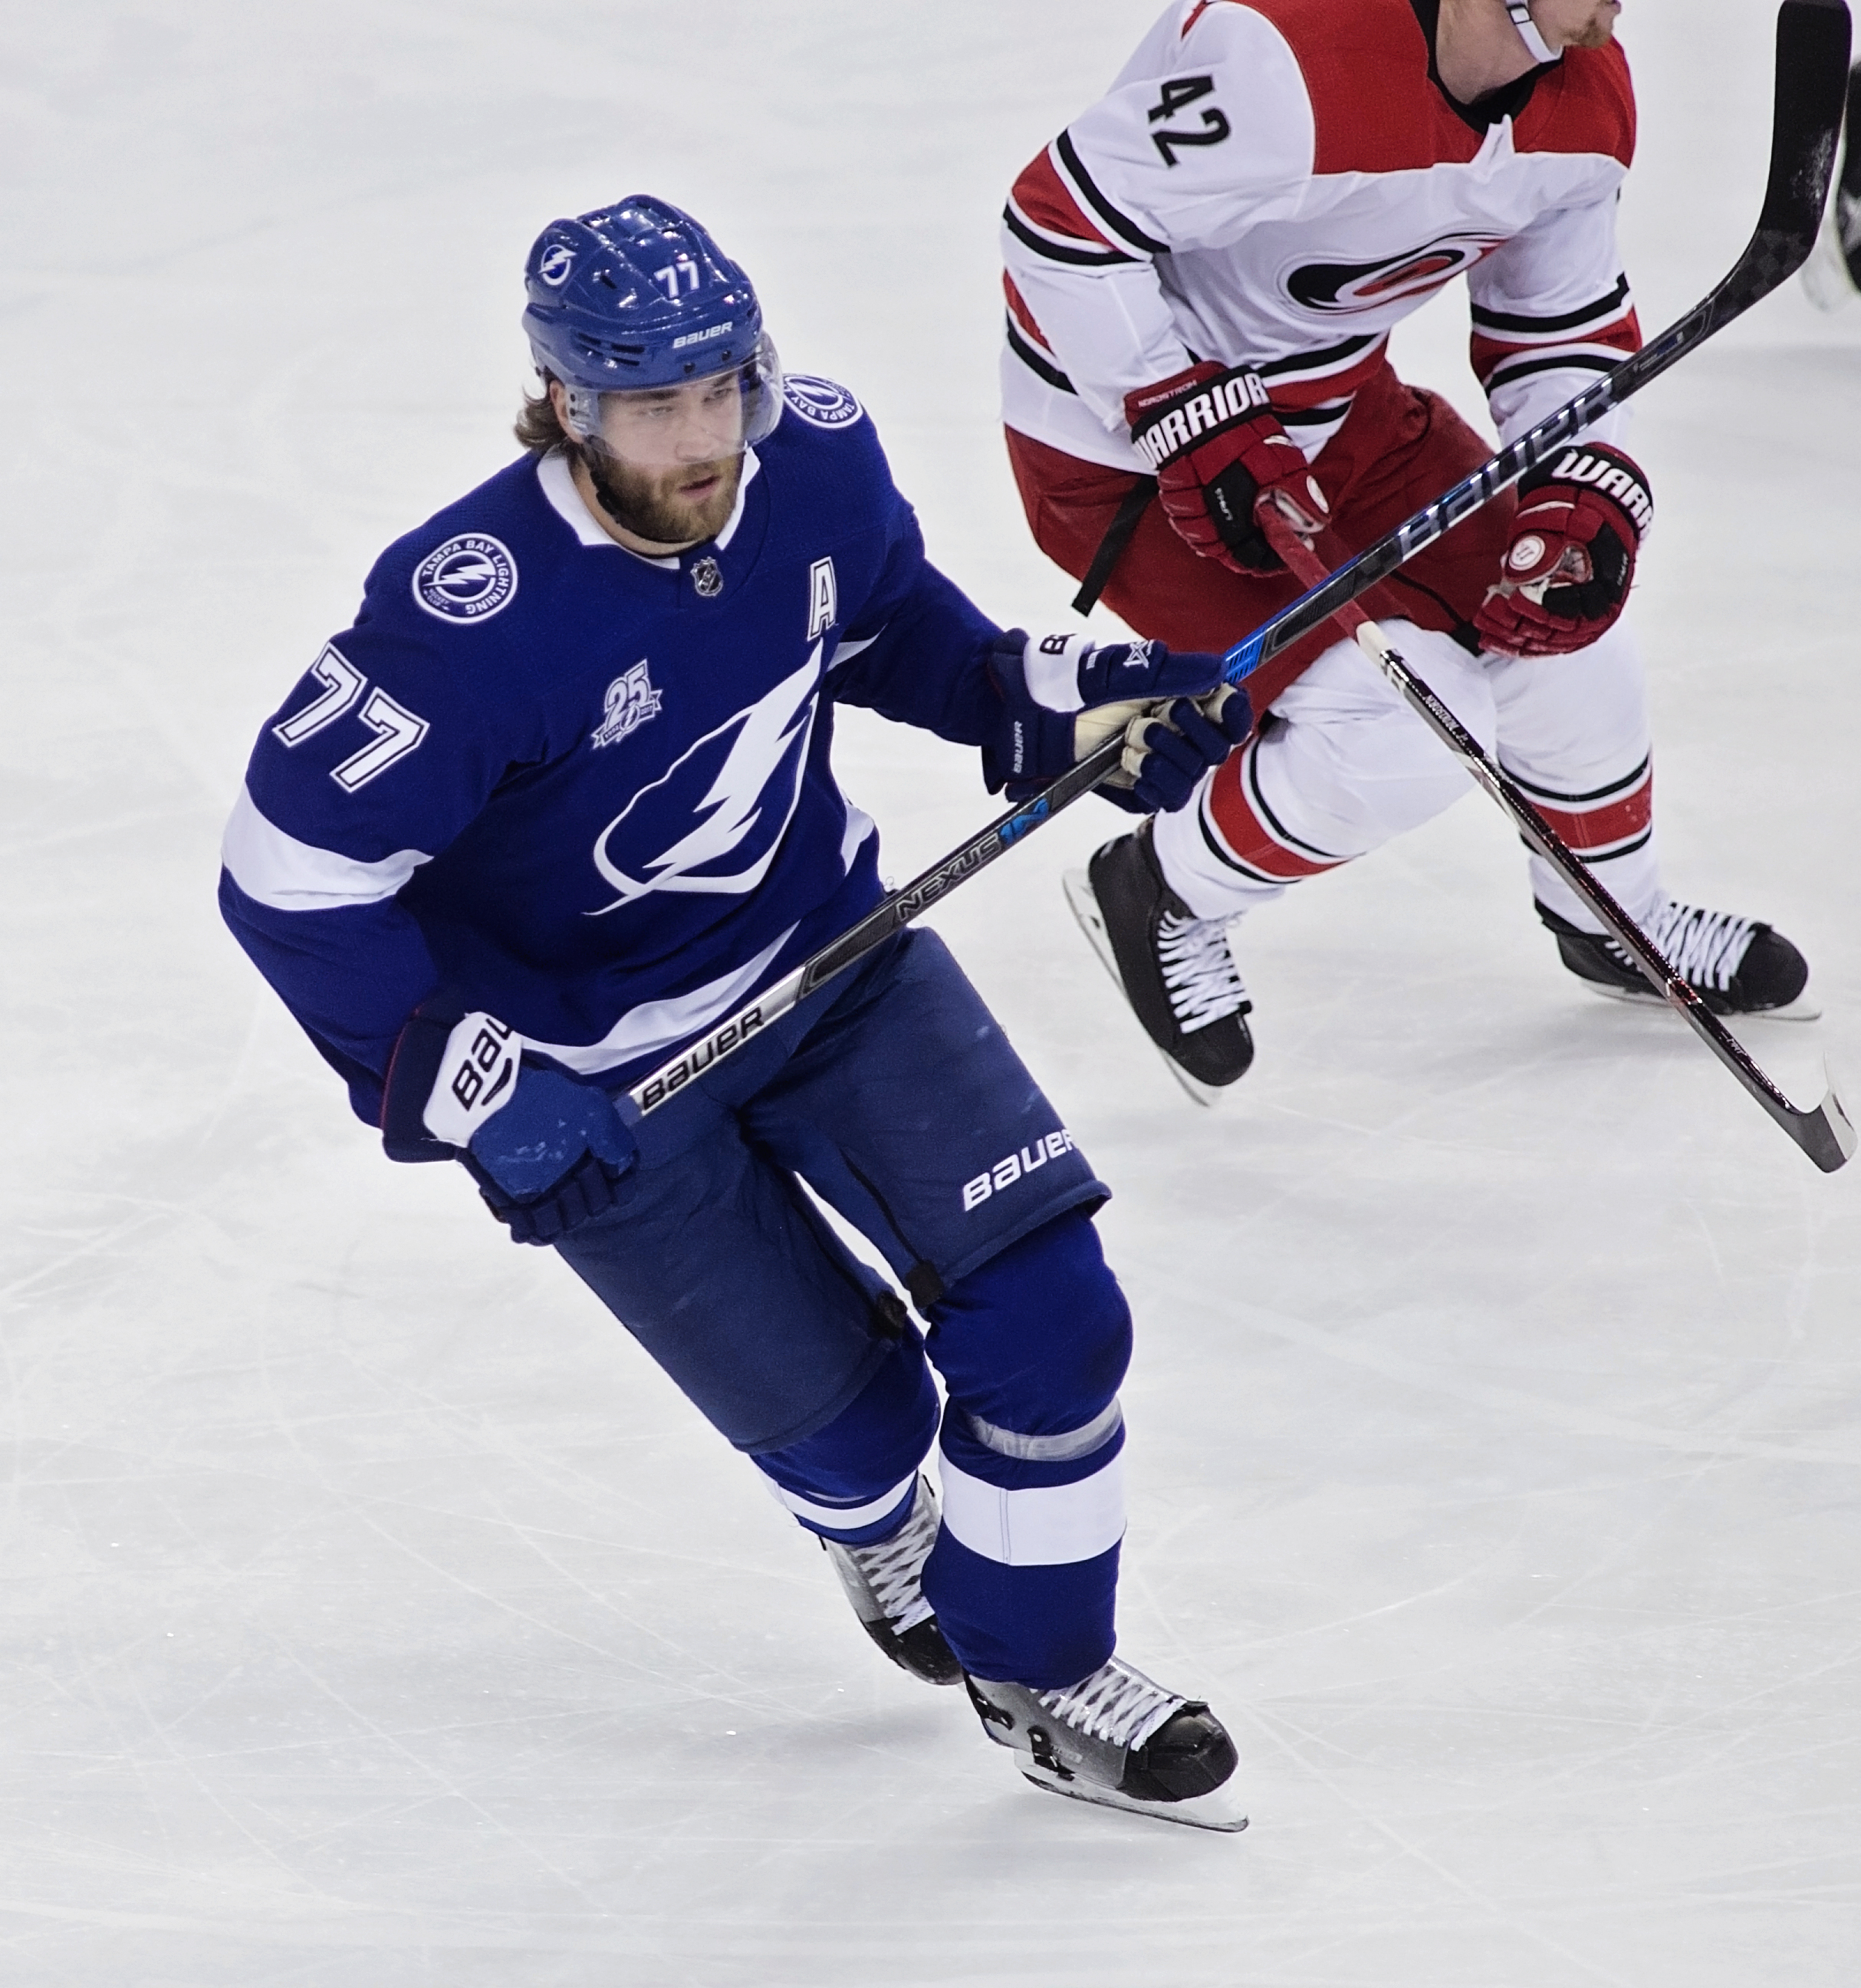 Hedman has led the Lightning's defense all season./CARMEN MANDATO